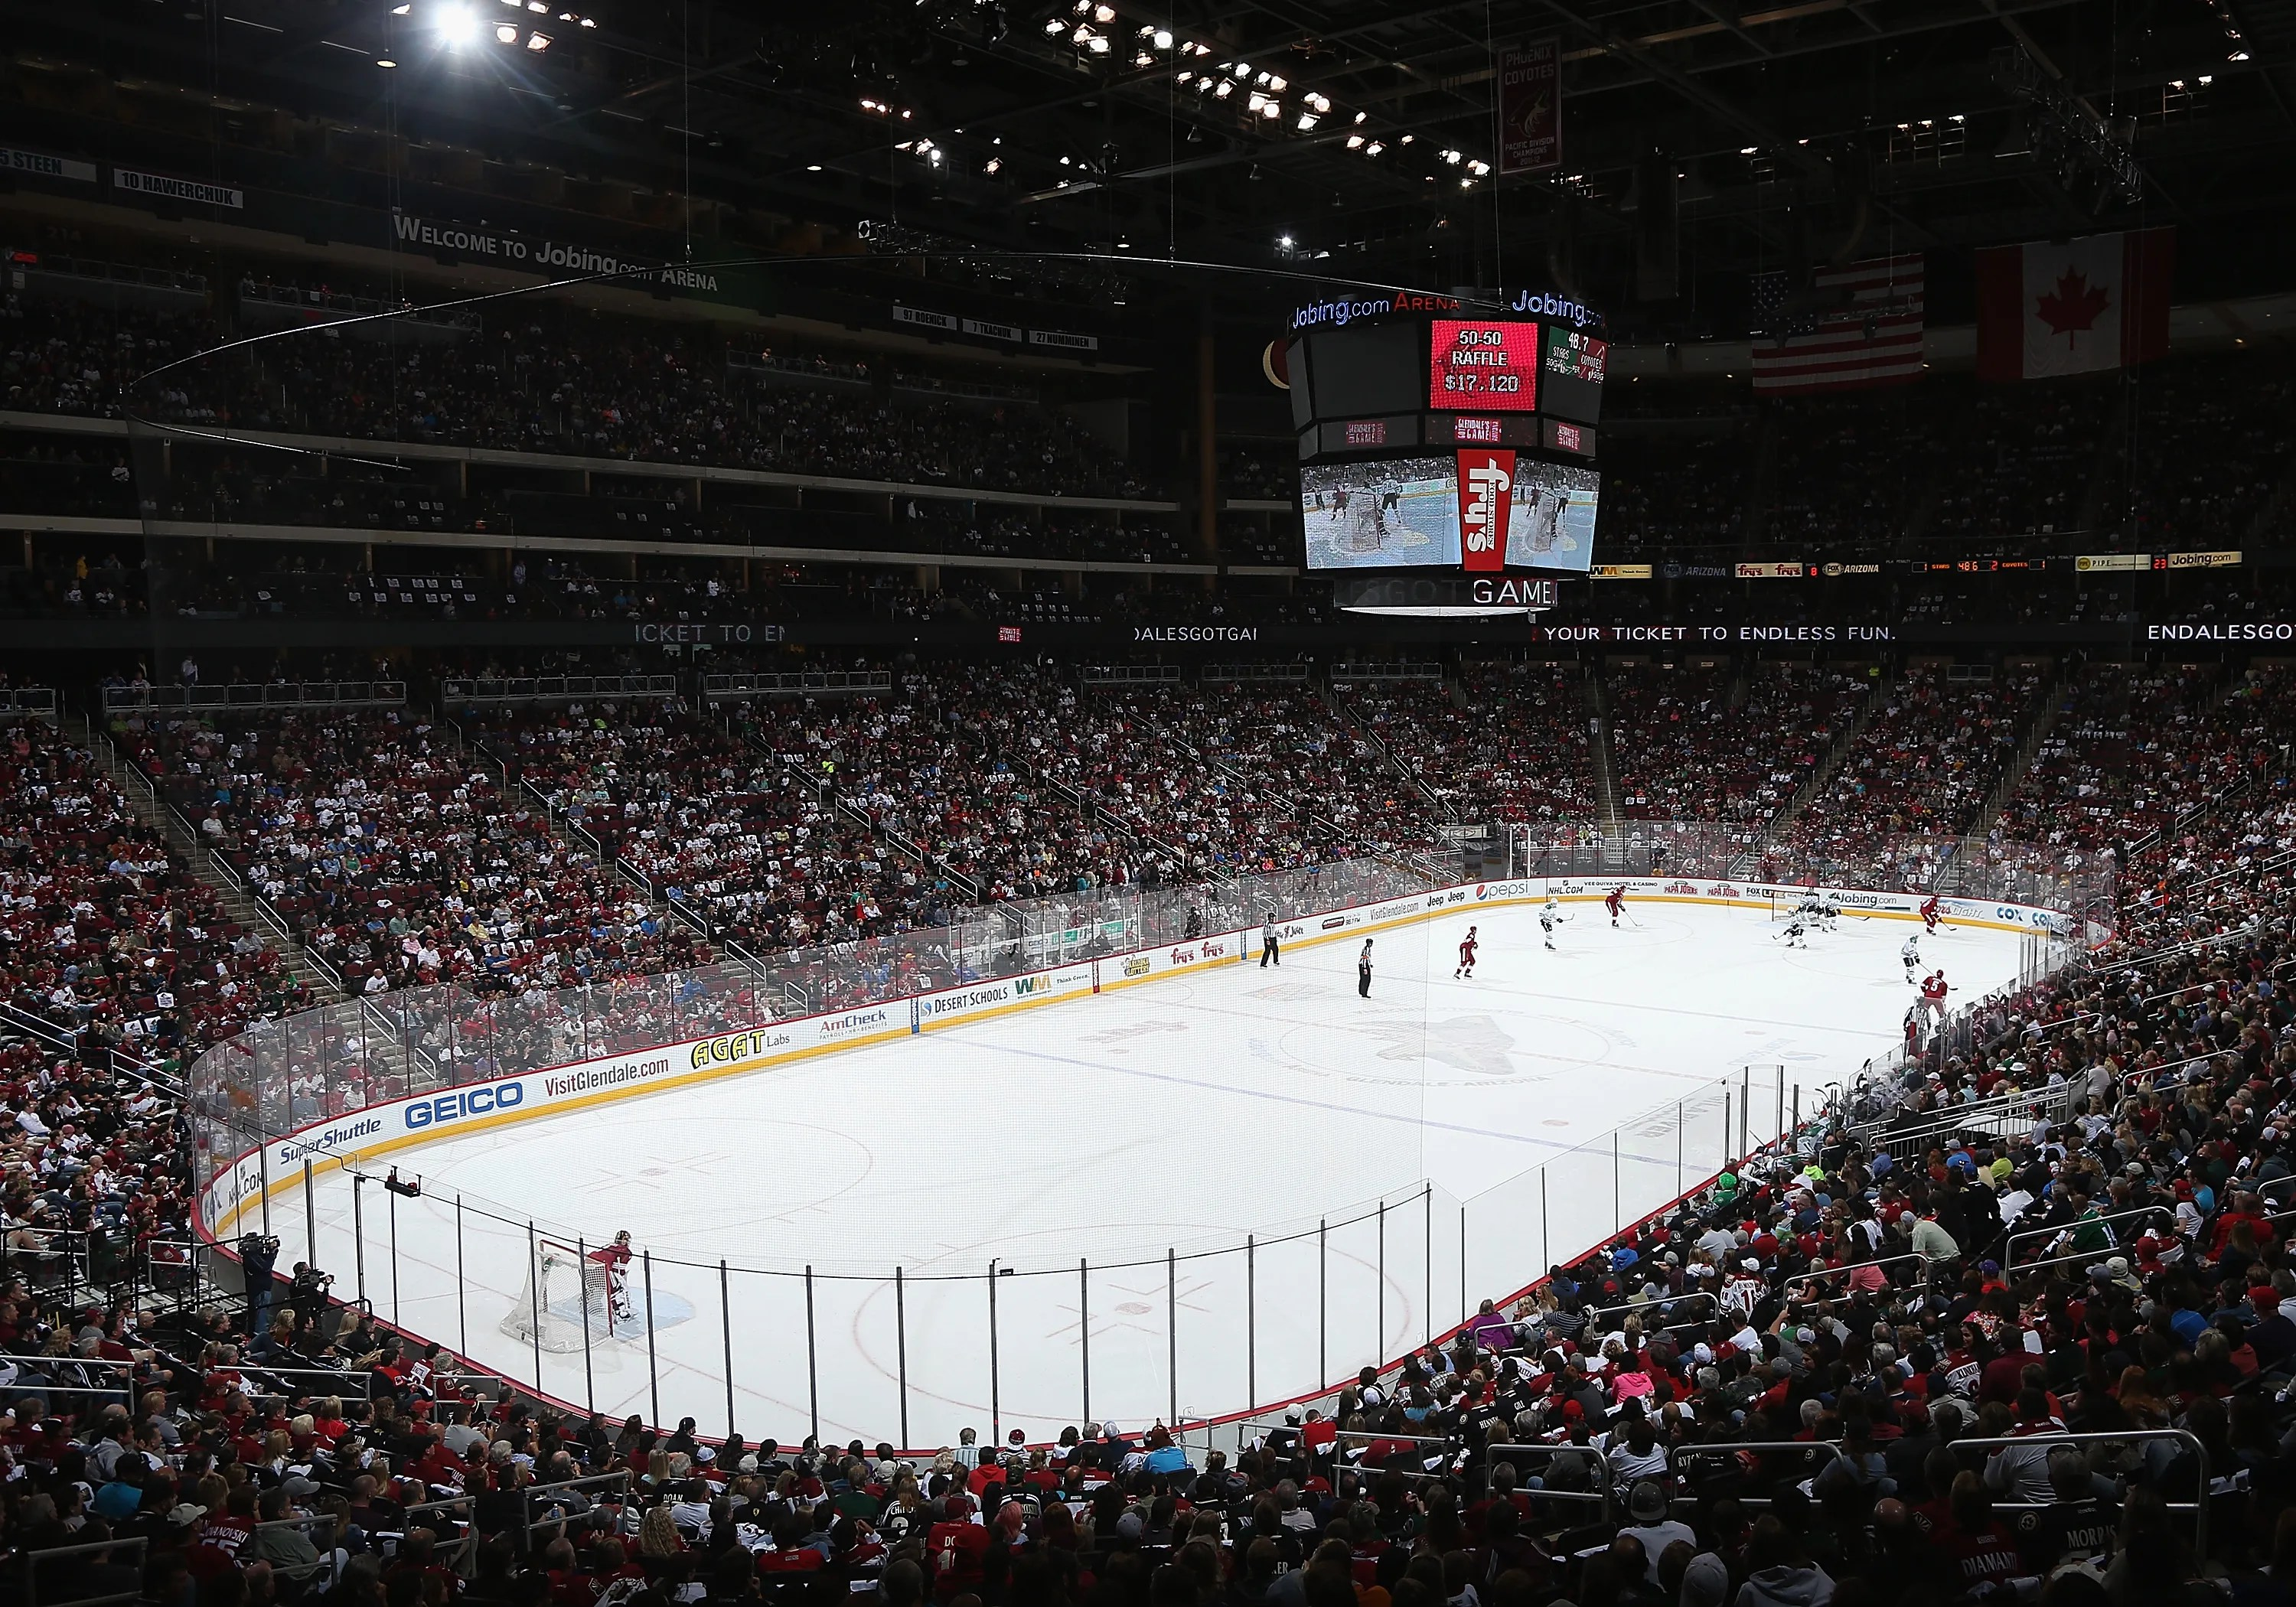 Seattle can learn from NHL arena fiasco in Glendale  The